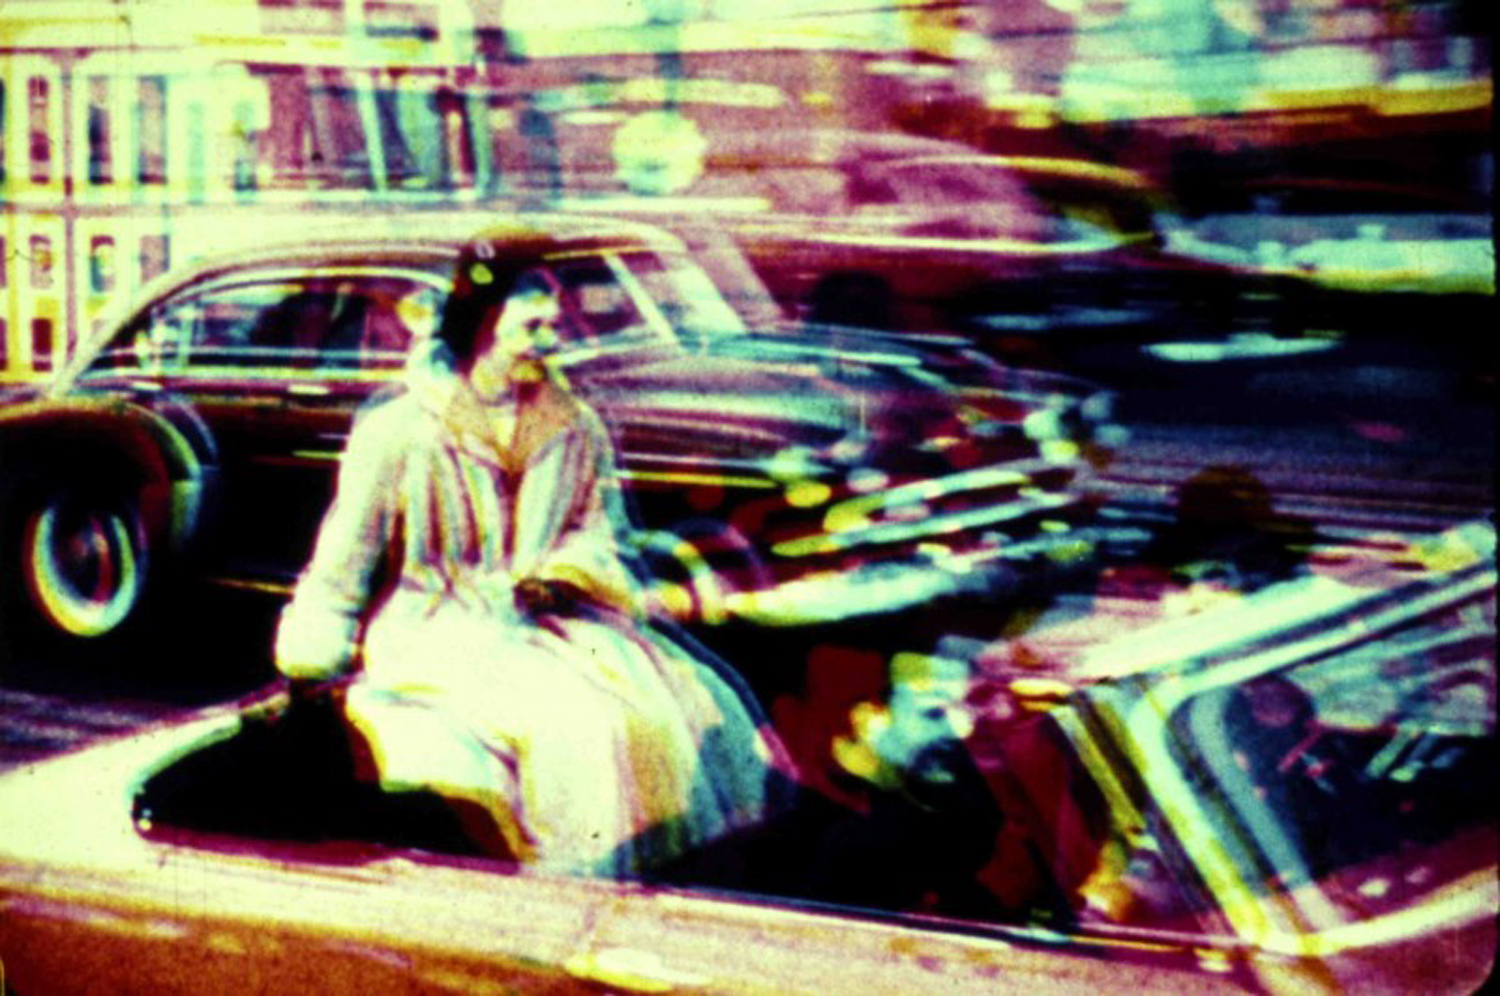 Memory, Decay and Nostalgia in Home Movies: A Screening by Canadian Images in Conversation